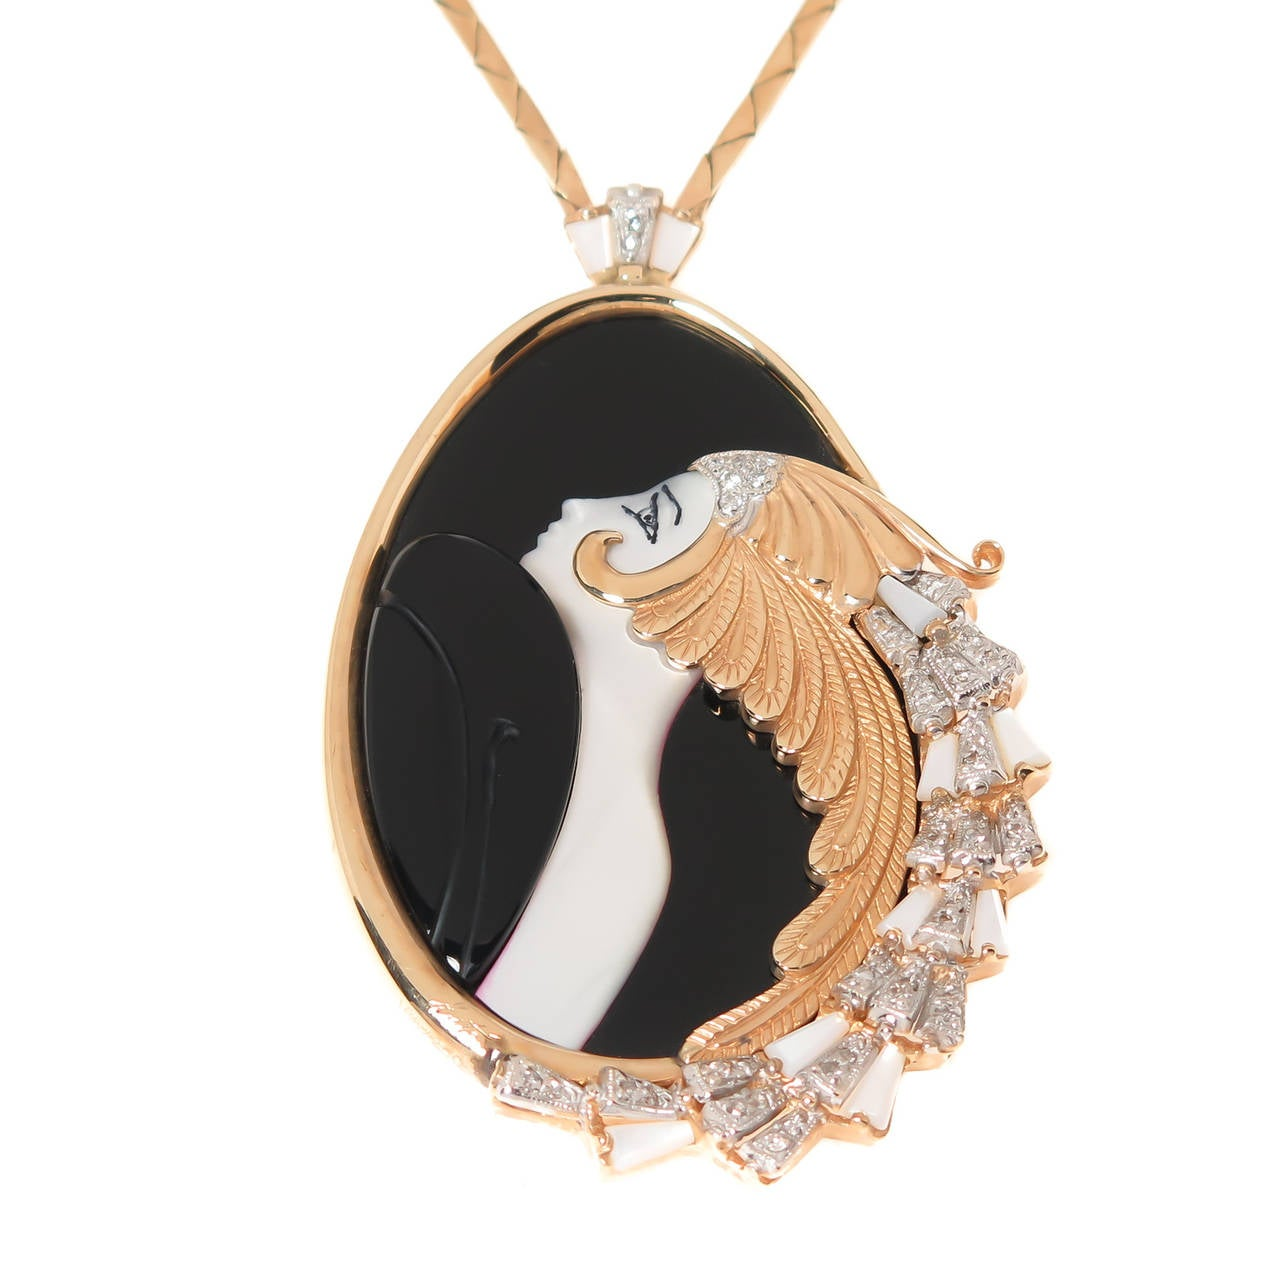 "Circa 1980s  Erte "" Beauty and the Beast"" Necklace, 14k Yellow Gold, Diamonds, Onyx and Mother of Pearl. The pendant portion measures 2 3/4 inch in length X 1 3/4 inch wide. Suspended from an 18 inch 14K Yellow Gold chain. Signed, numbered"